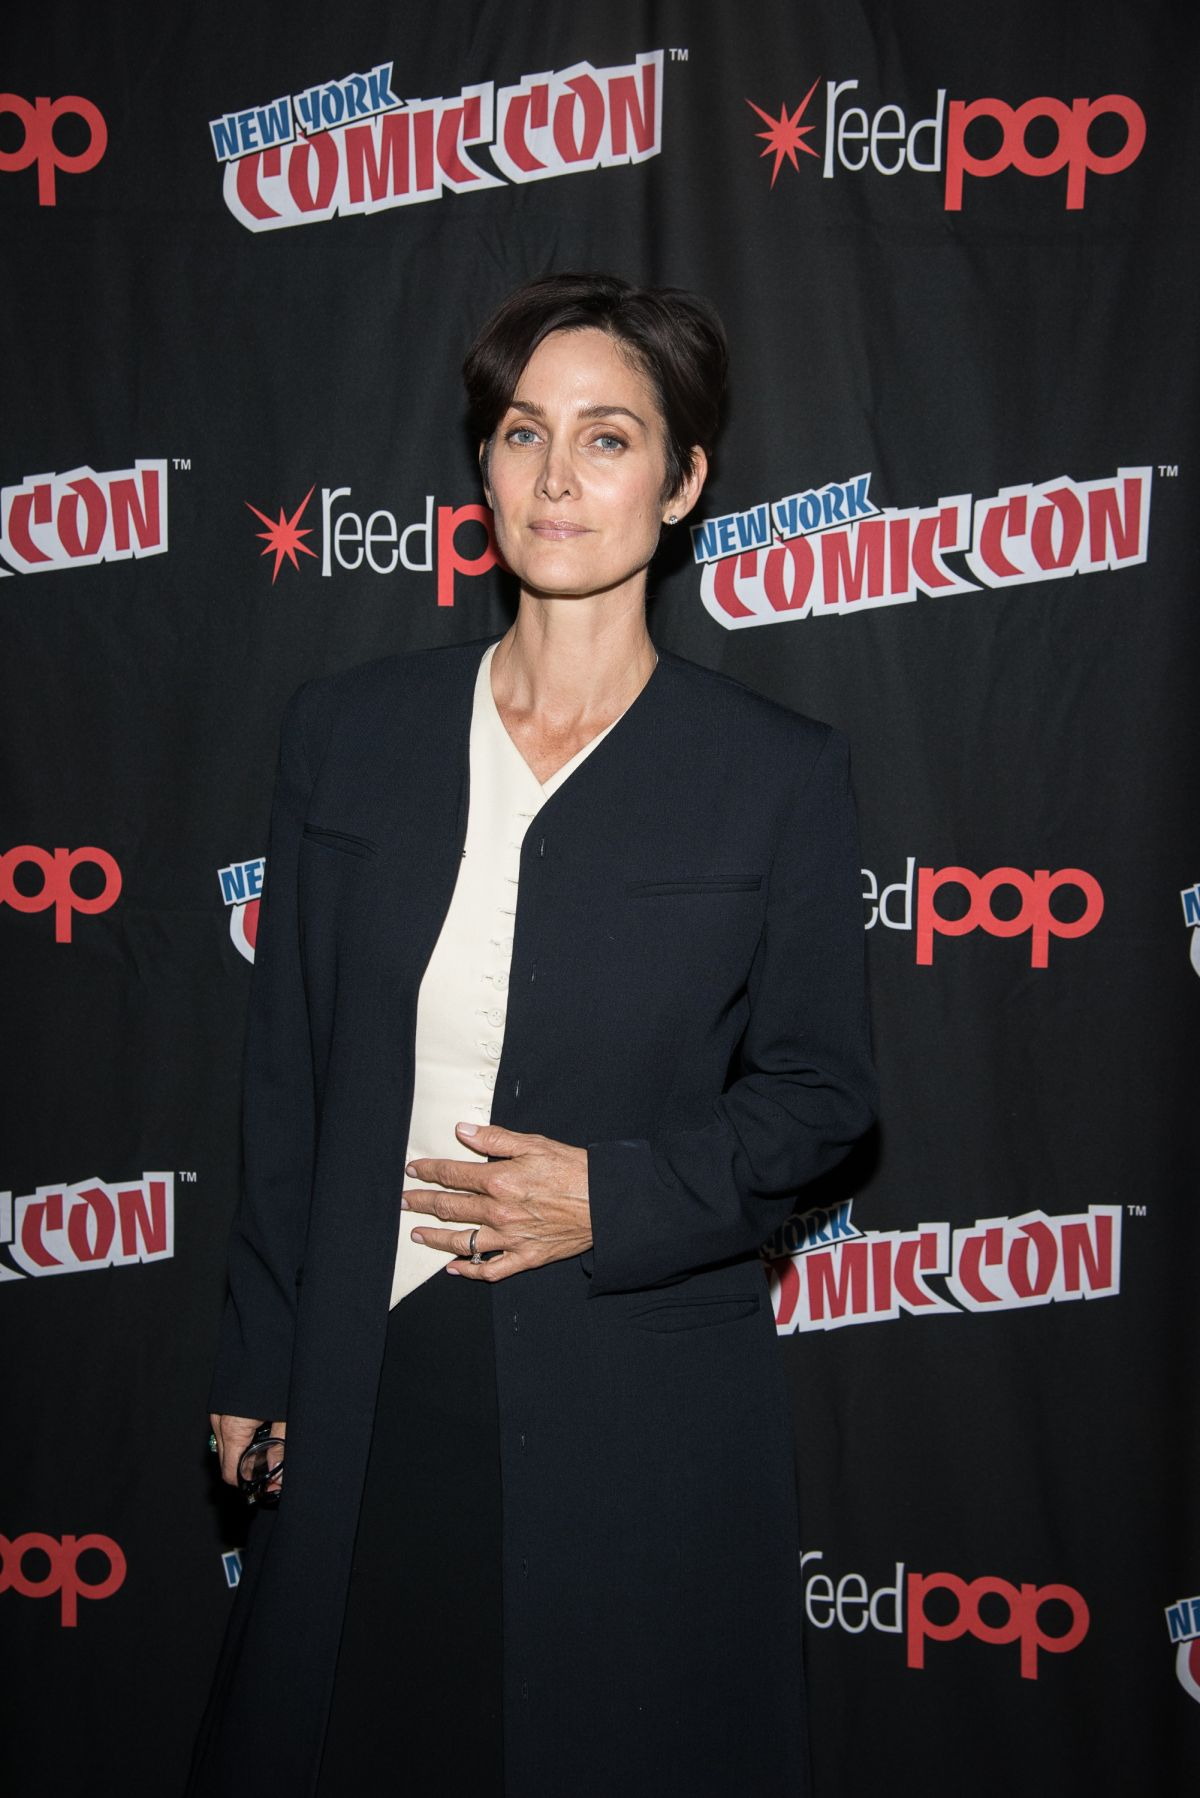 CARRIE-ANNE MOSS at 2015 New York Comic-con 10/10/2015